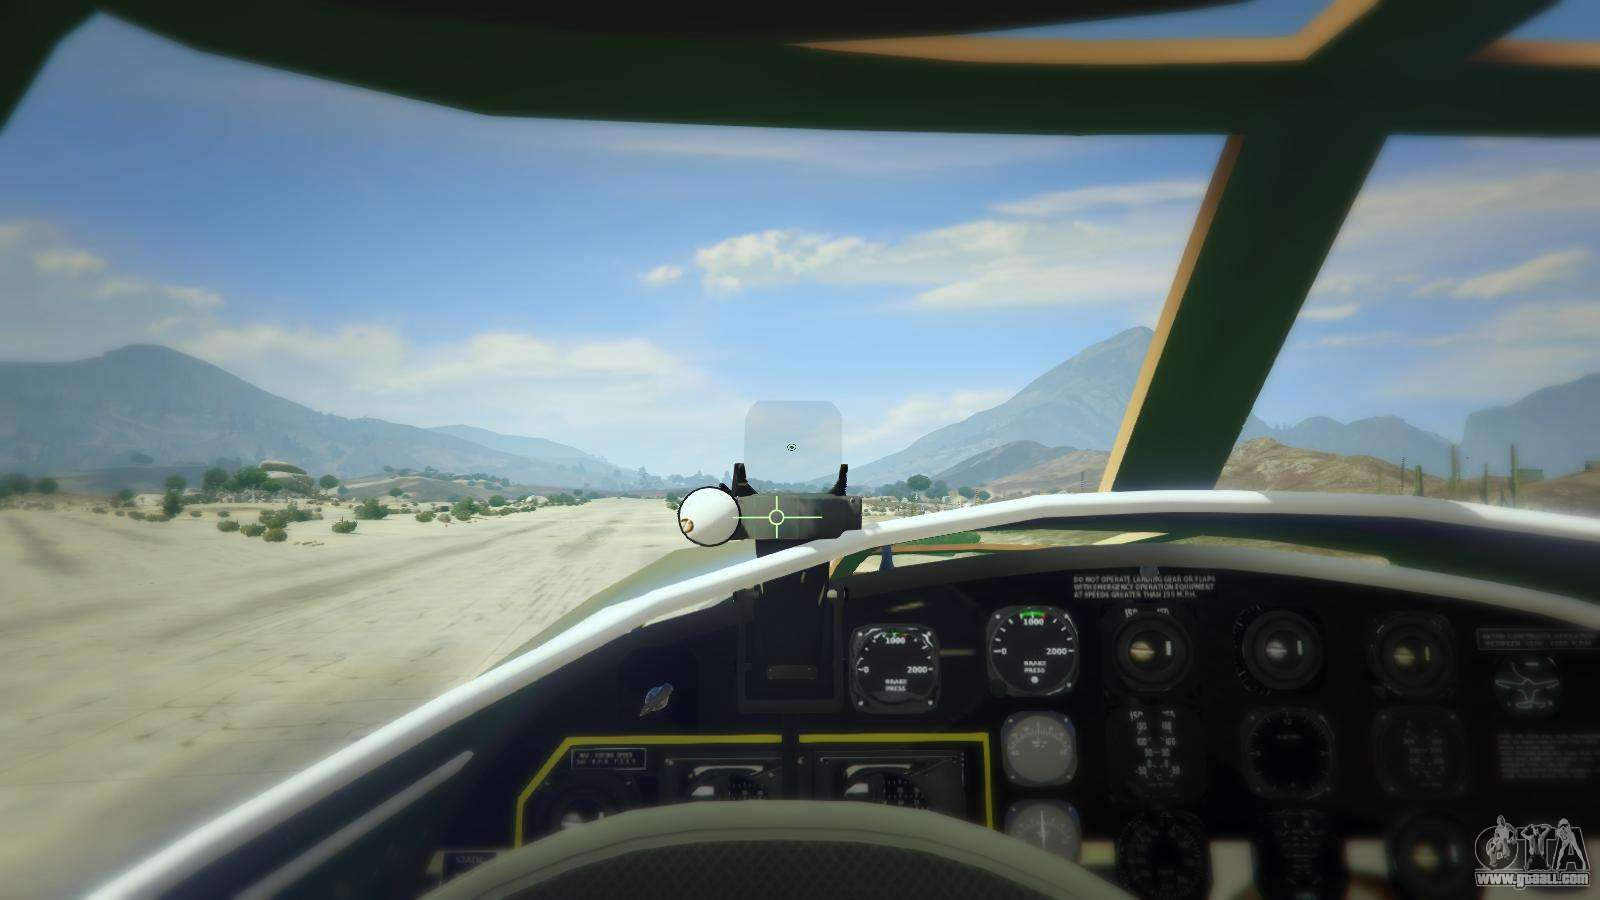 gta v airplane pc with 75773 B 25 on 75782 Lockheed F 117 Nighthawk Black 20 as well Cheats also Watch as well Gta 5 And Gta 4 Map Size  pared Guess Which One Wins also Famous Real Planes Textures.